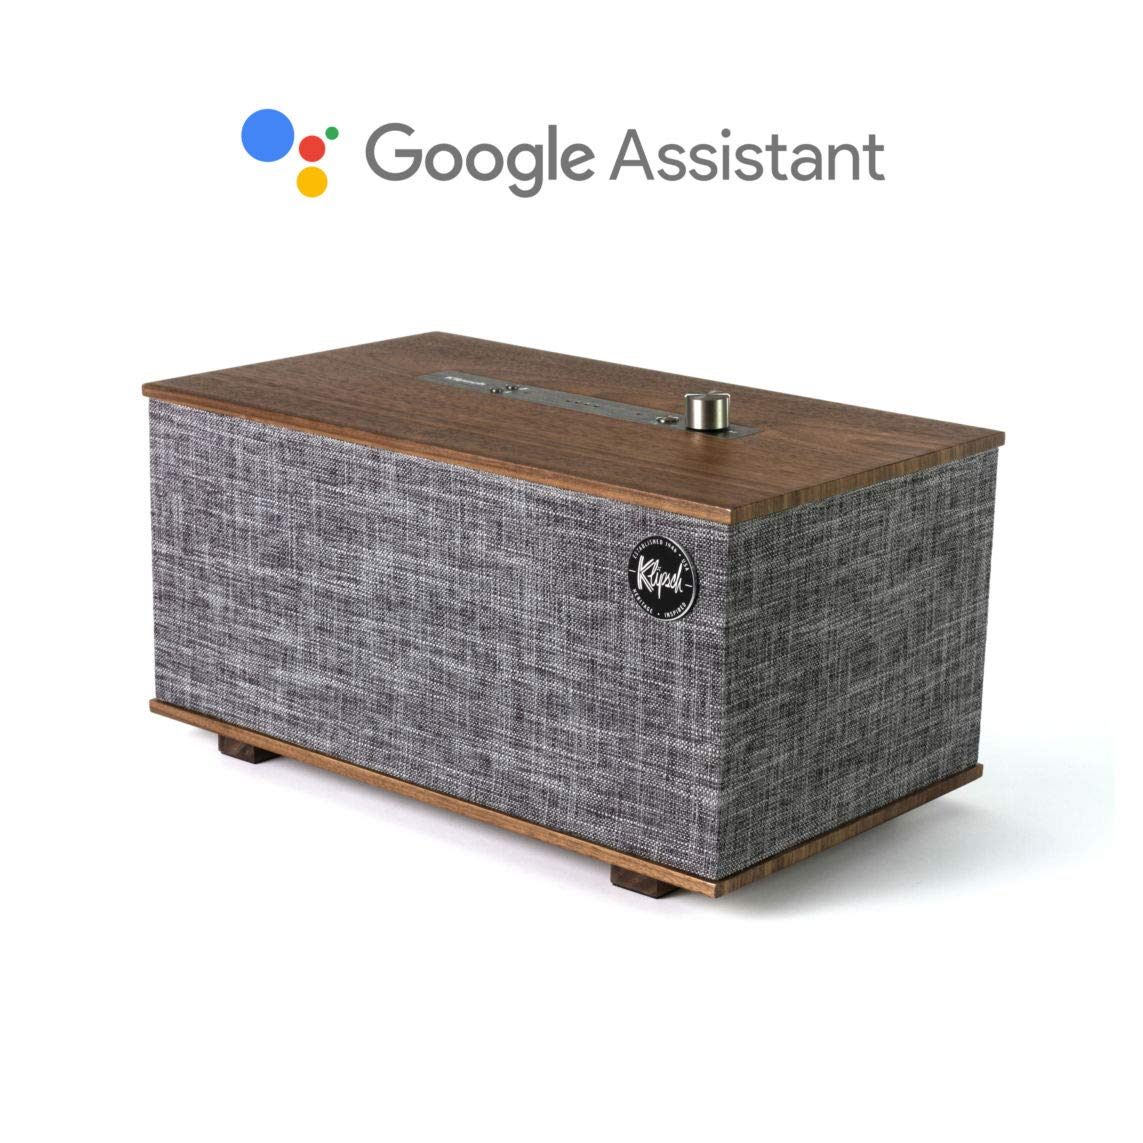 The Three Google Assistant